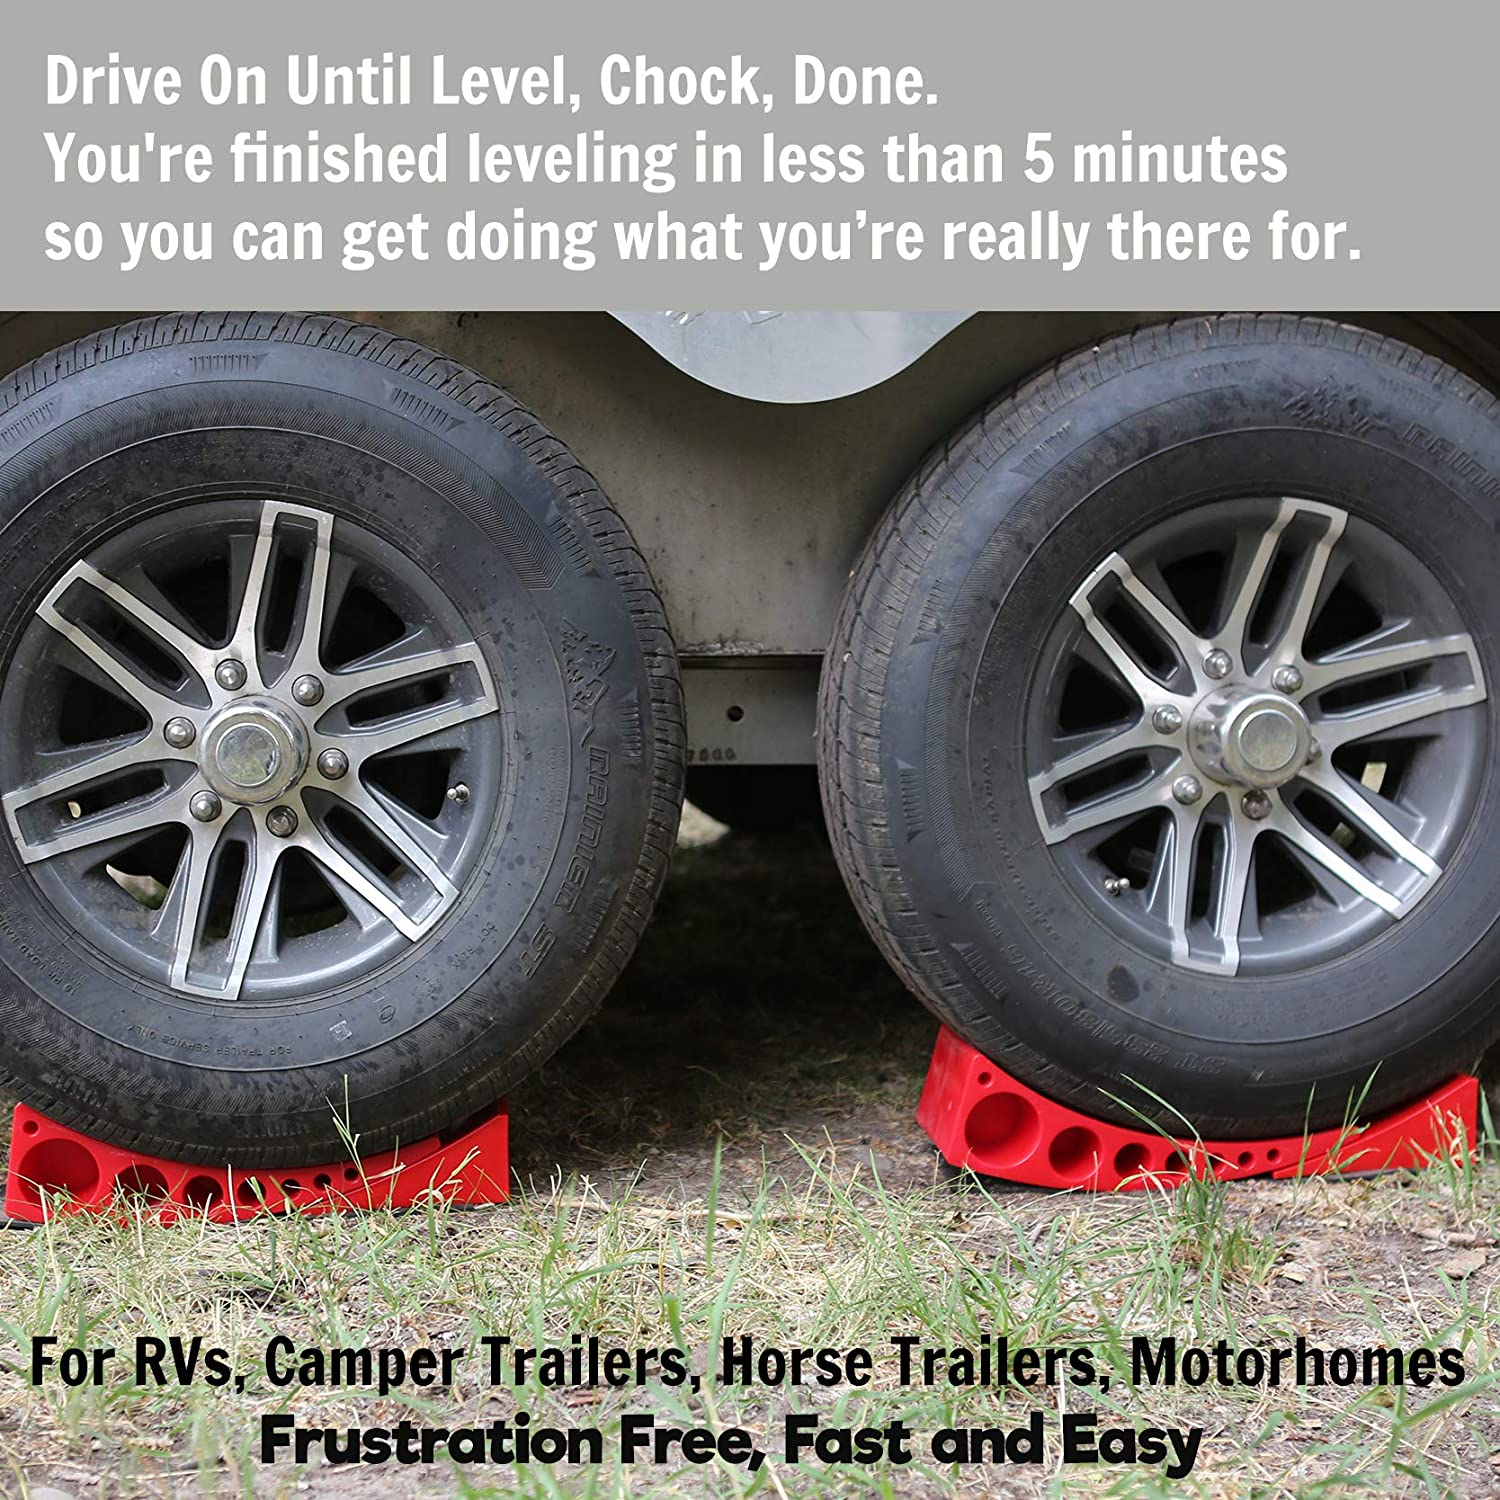 Camper Wheel Chocks >> 2 Pack Camper Leveler Chock Kit Andersen 3604 X2 Less Than 5 Minutes To Level Your Camper Or Trailer Levelers For Rv Simply Drive On Chock